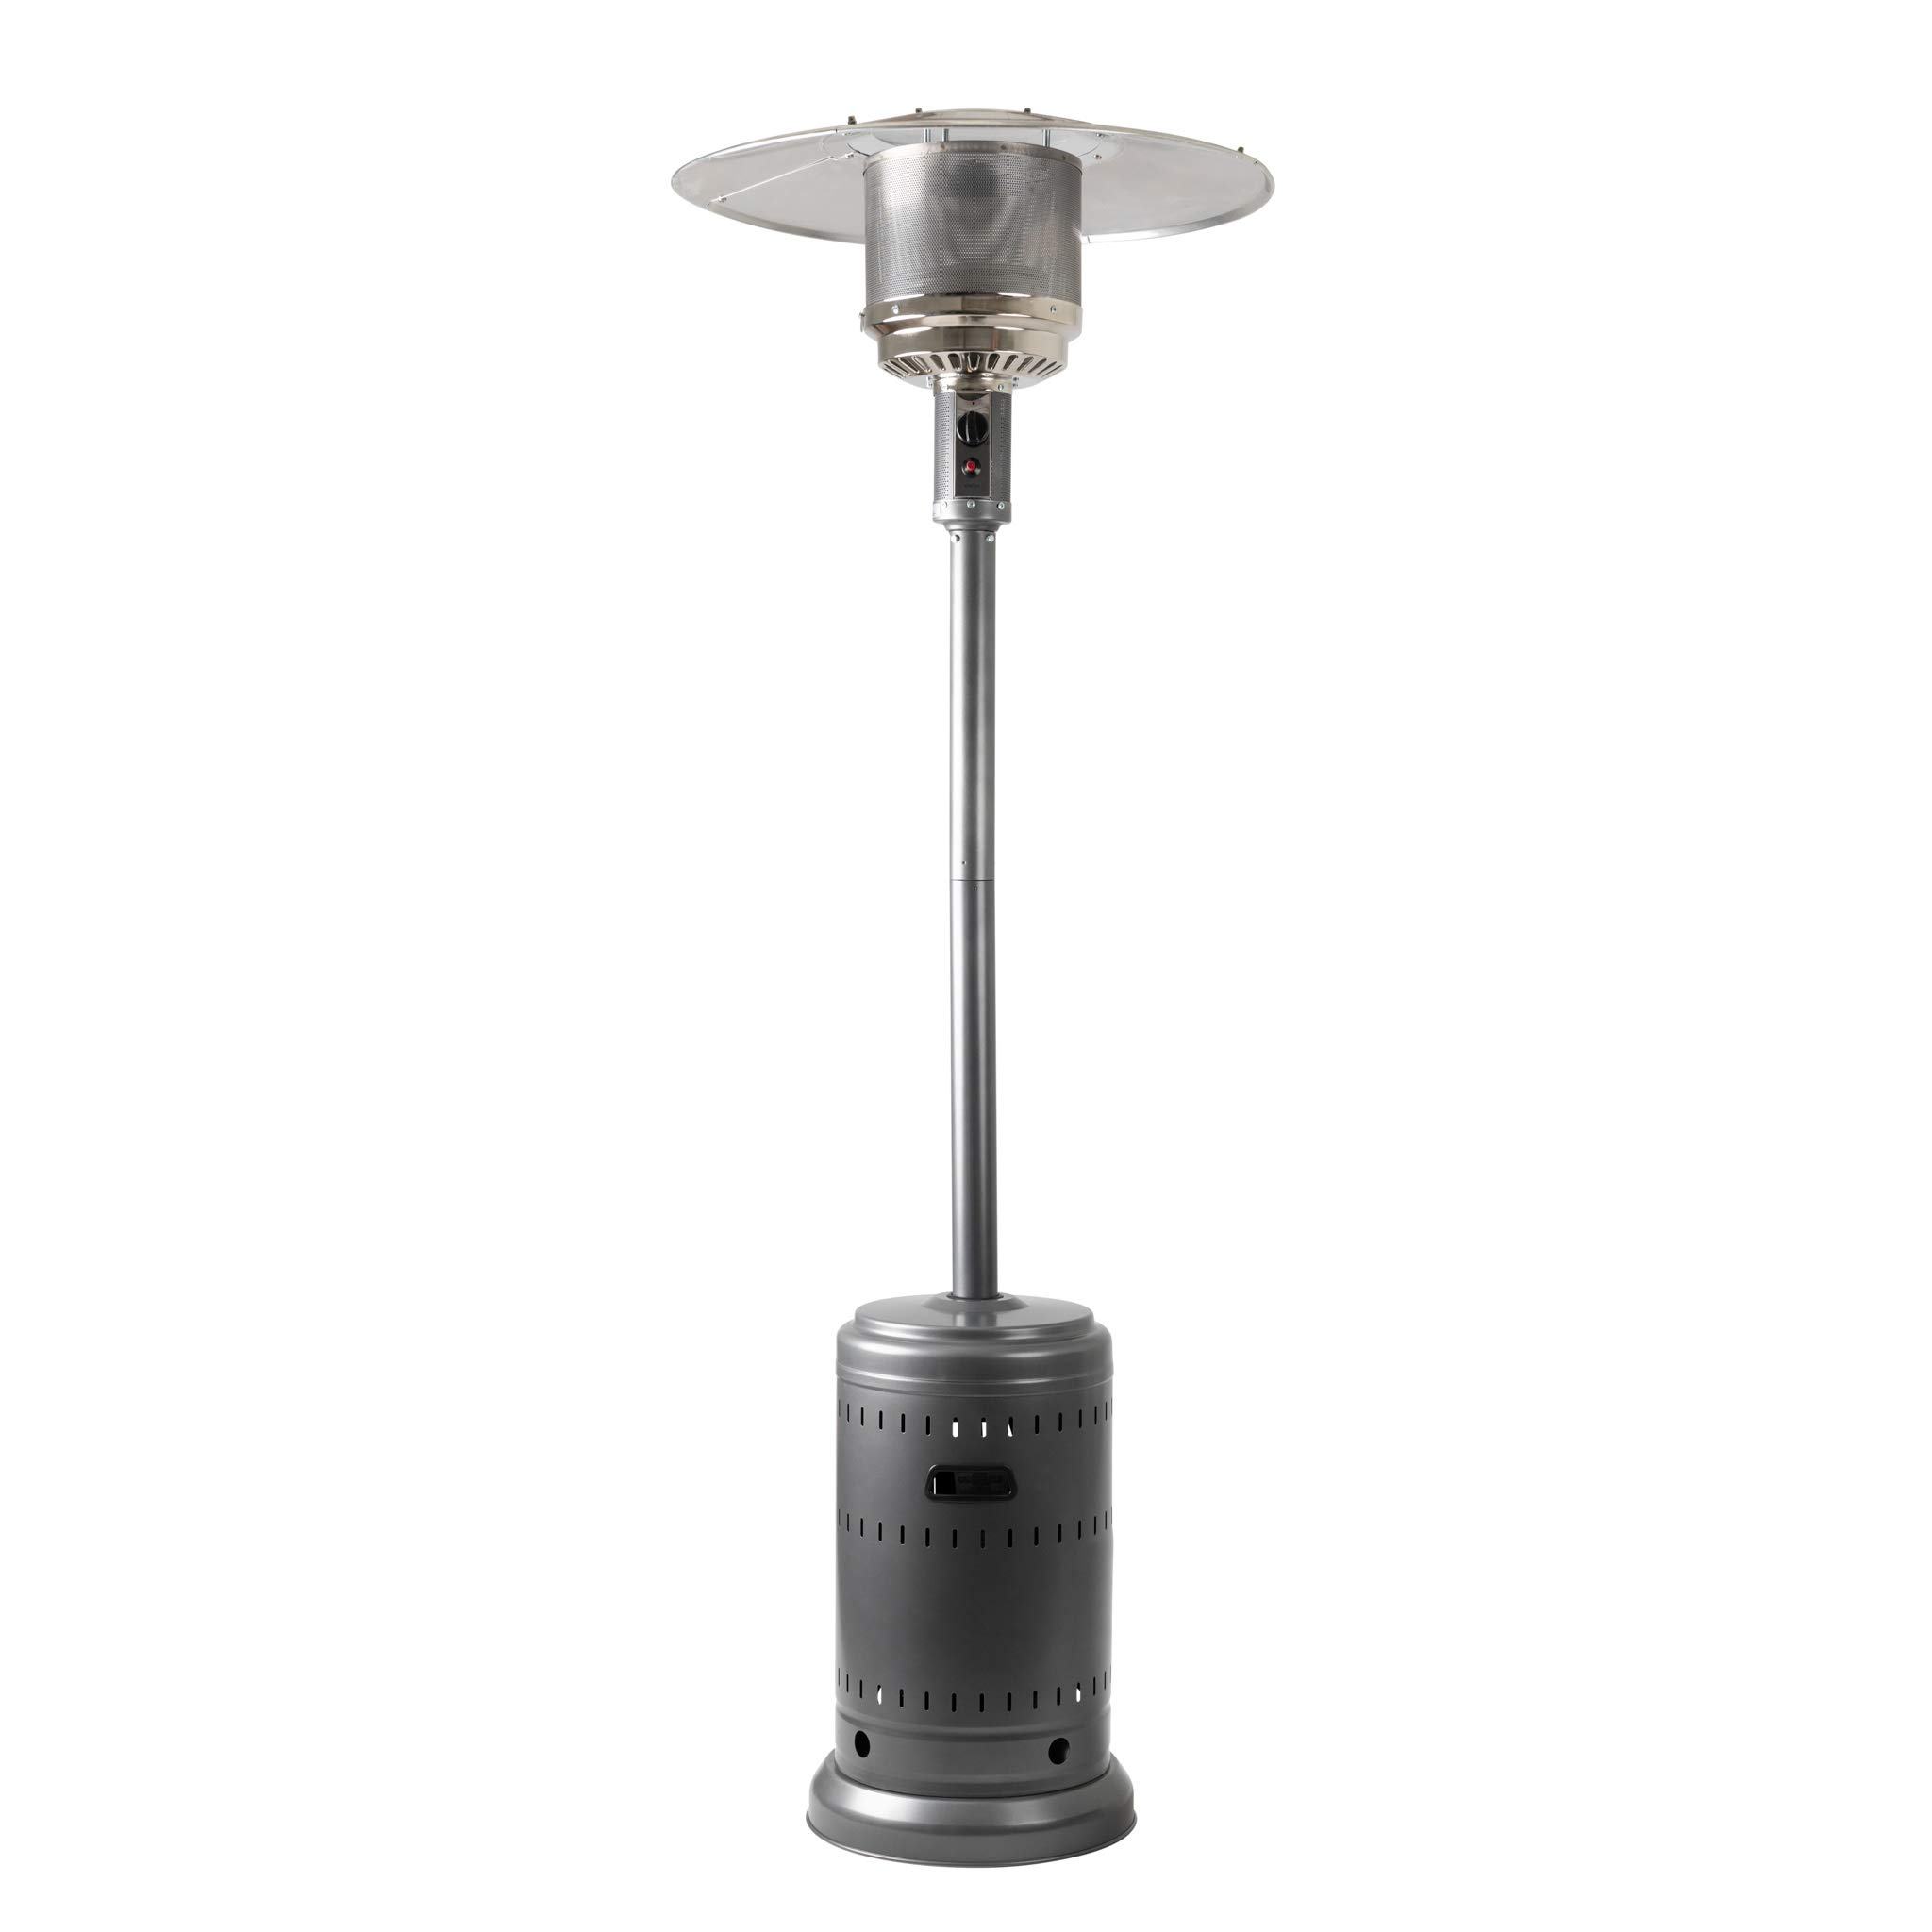 AmazonBasics Commercial Outdoor Patio Heater, Slate Grey by AmazonBasics